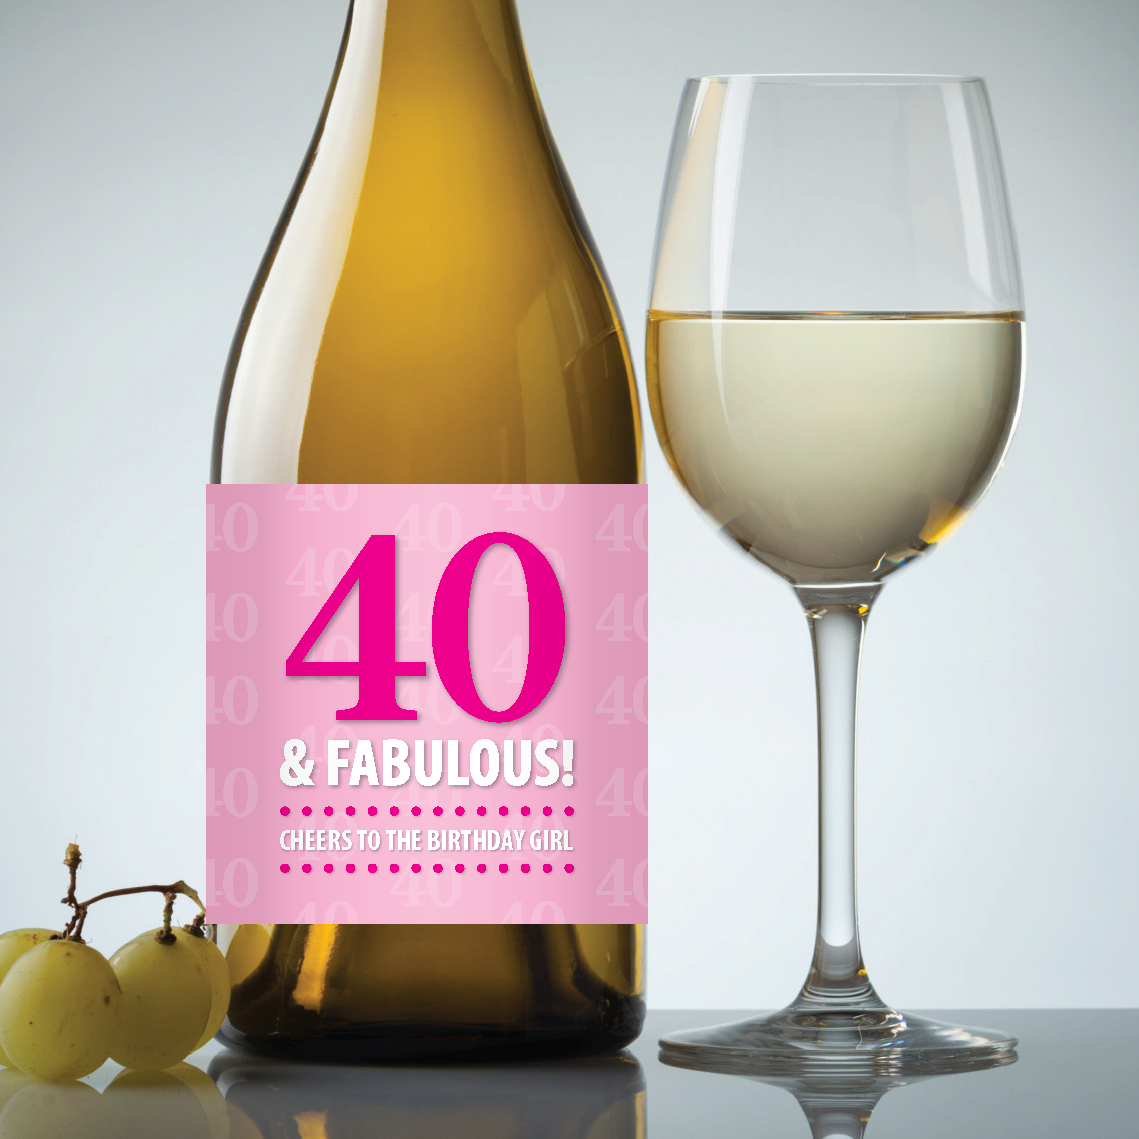 40 & Fabulous – 40Th Birthday Pdf Printable Wine Label Download In - Free Printable Wine Labels For Birthday